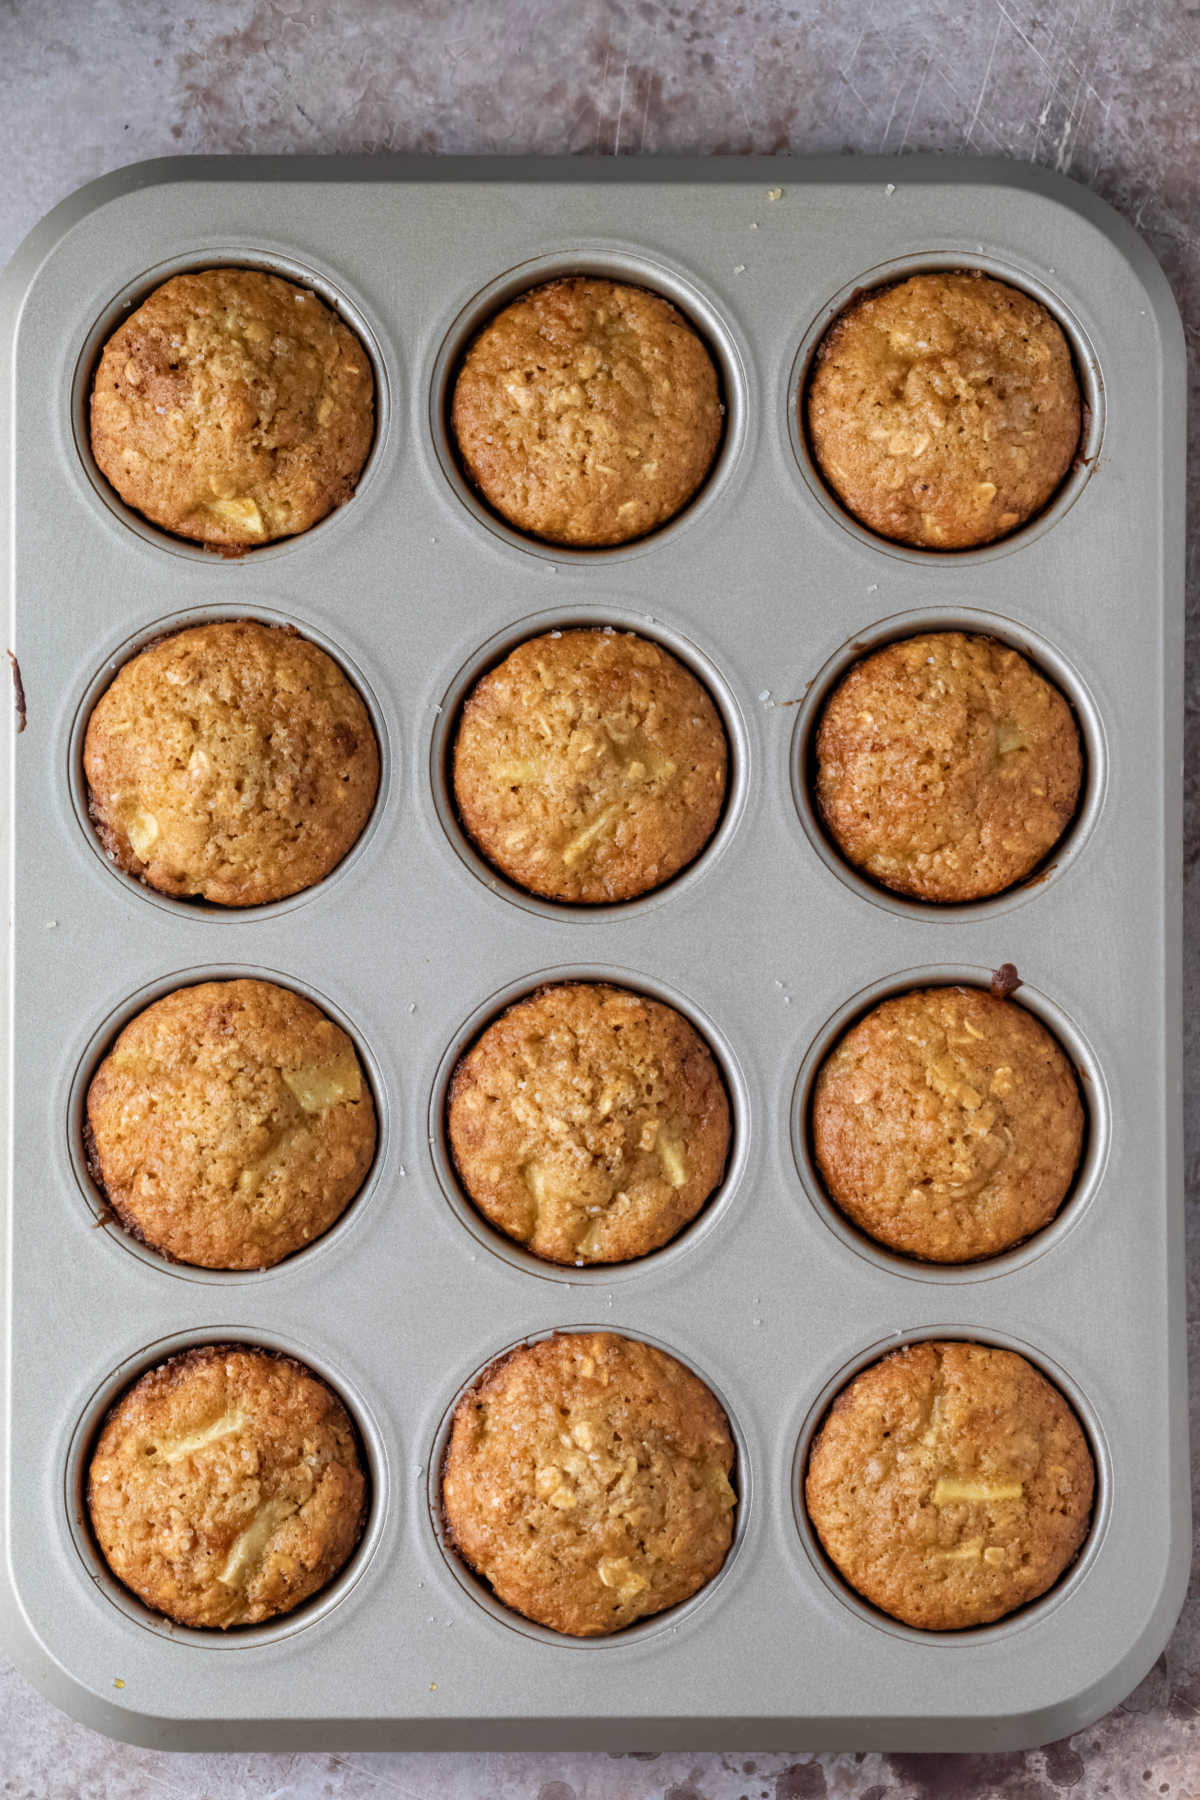 Baked muffins a muffin tin.